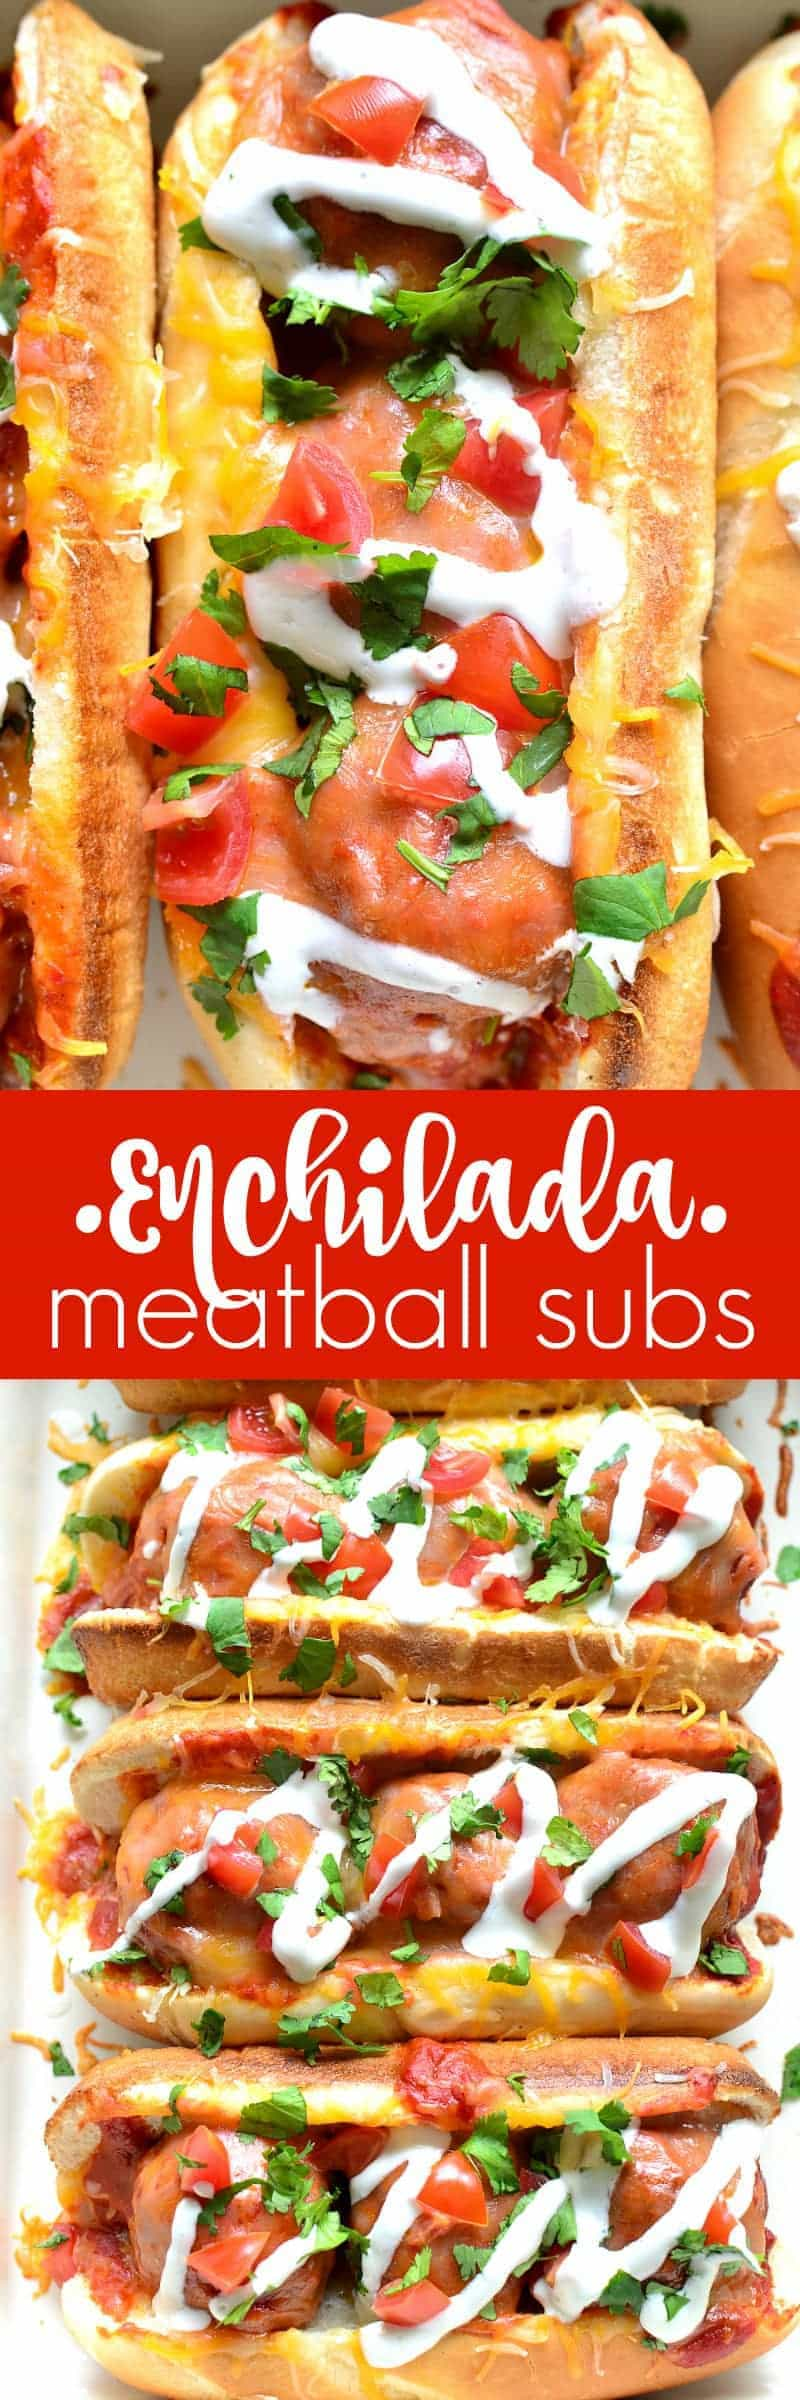 These Enchilada Meatball Subs combine two family favorites in one delicious dish that's easy to make and perfect for busy weeknights!